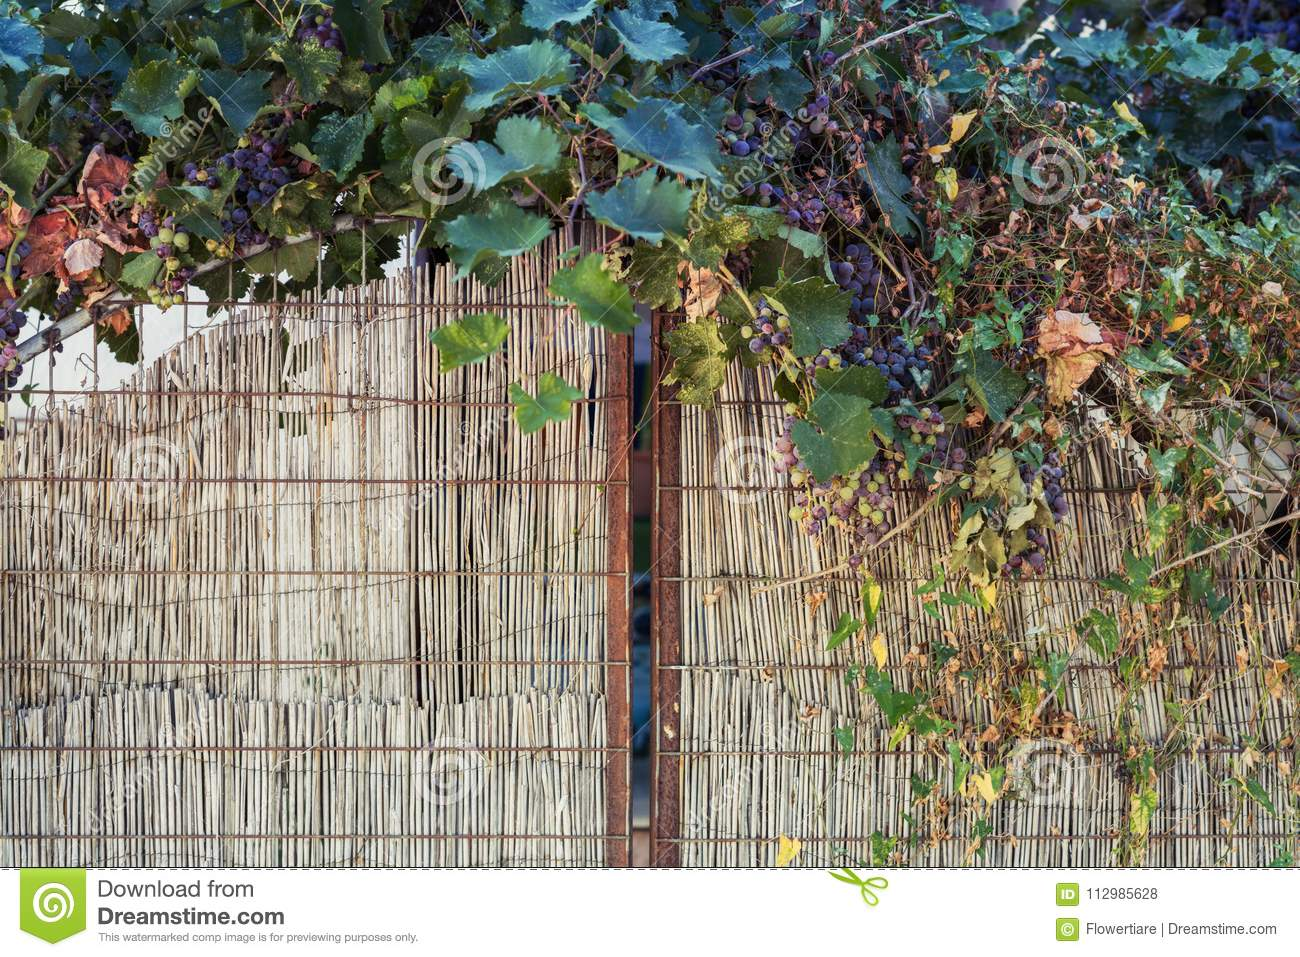 Grape vine on the background of a gate made of straw